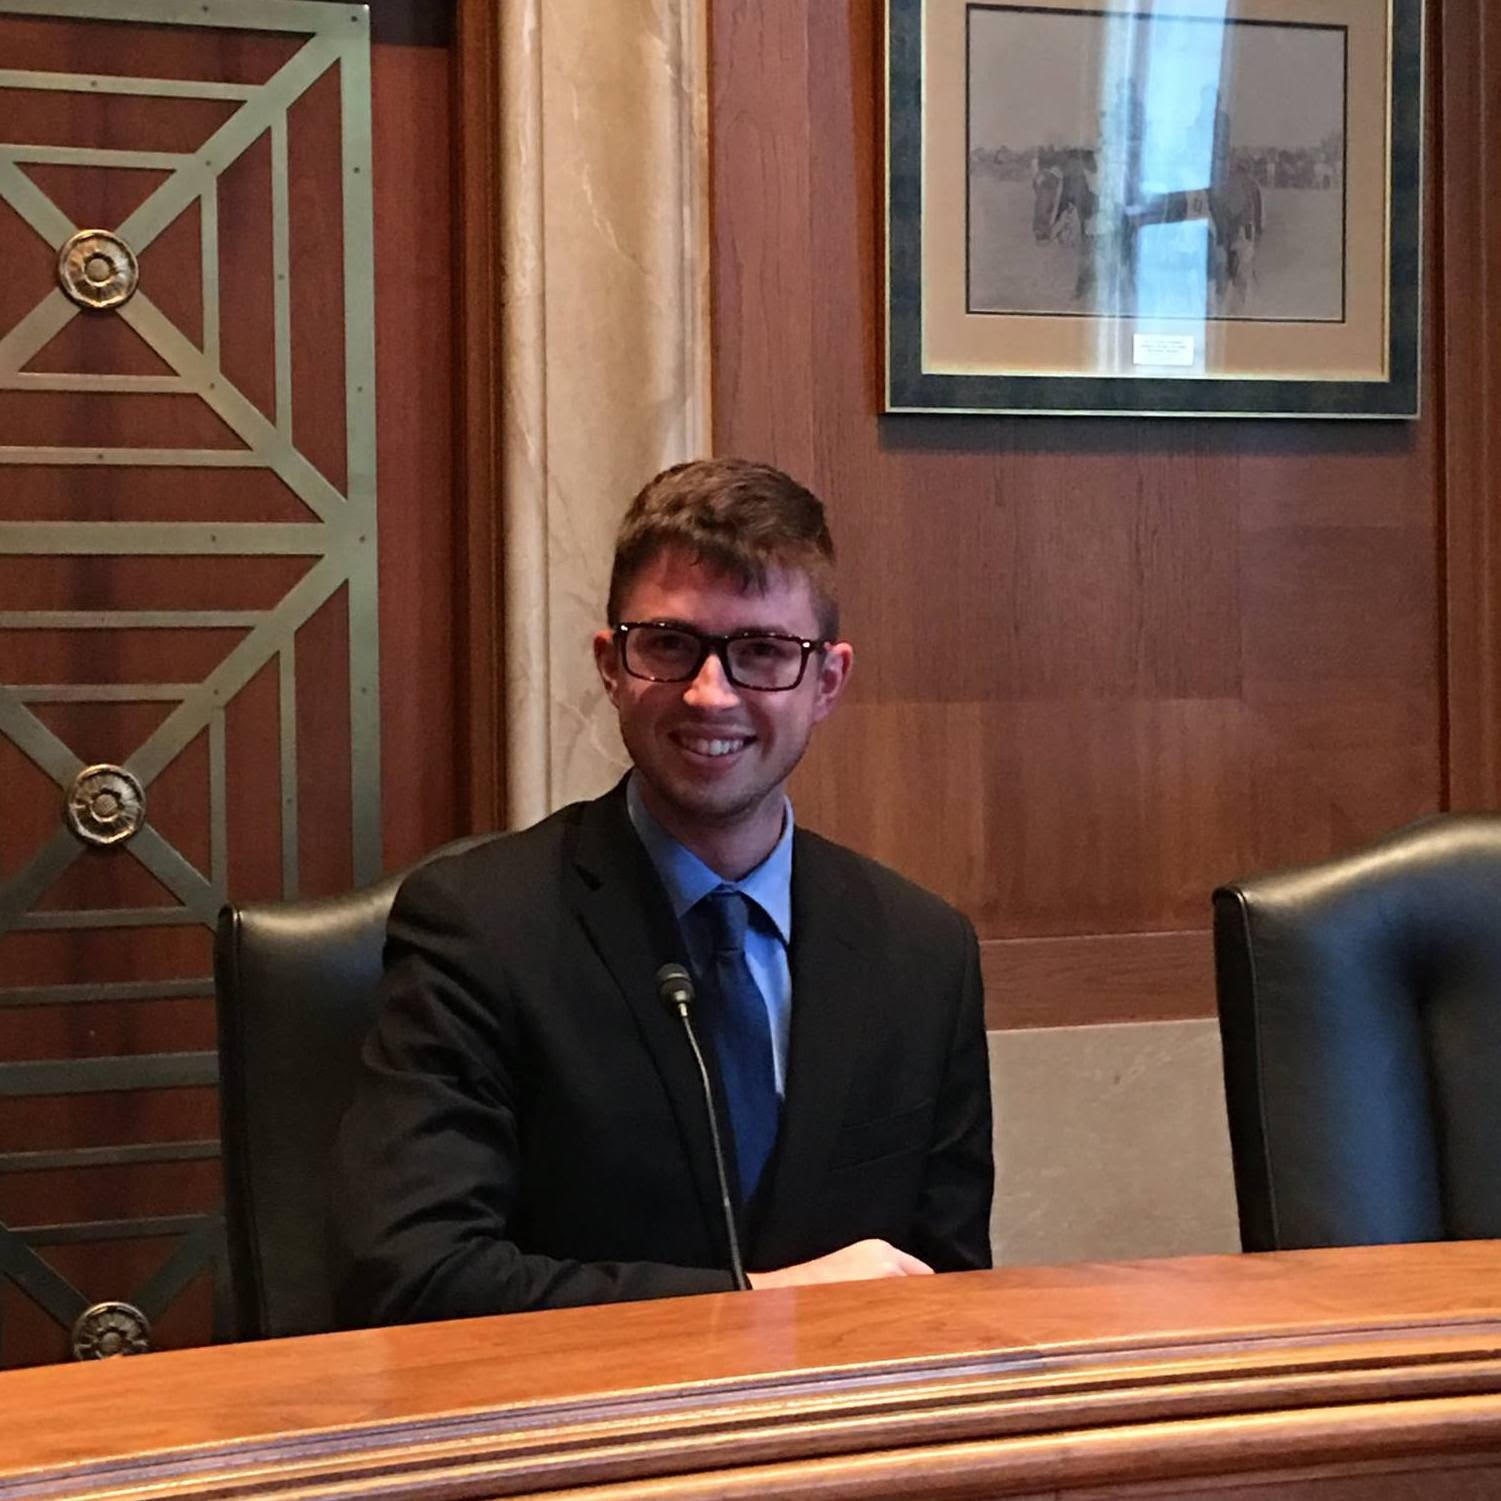 Contributor - Logan Cooper is a 3L at University of Arizona, James E. Rogers College of Law. He also serves at Editor-in-Chief of the Arizona Journal of Environmental Law & Policy. After graduation, he would like to continue his studies in Federal Indian Law and Environmental Law.